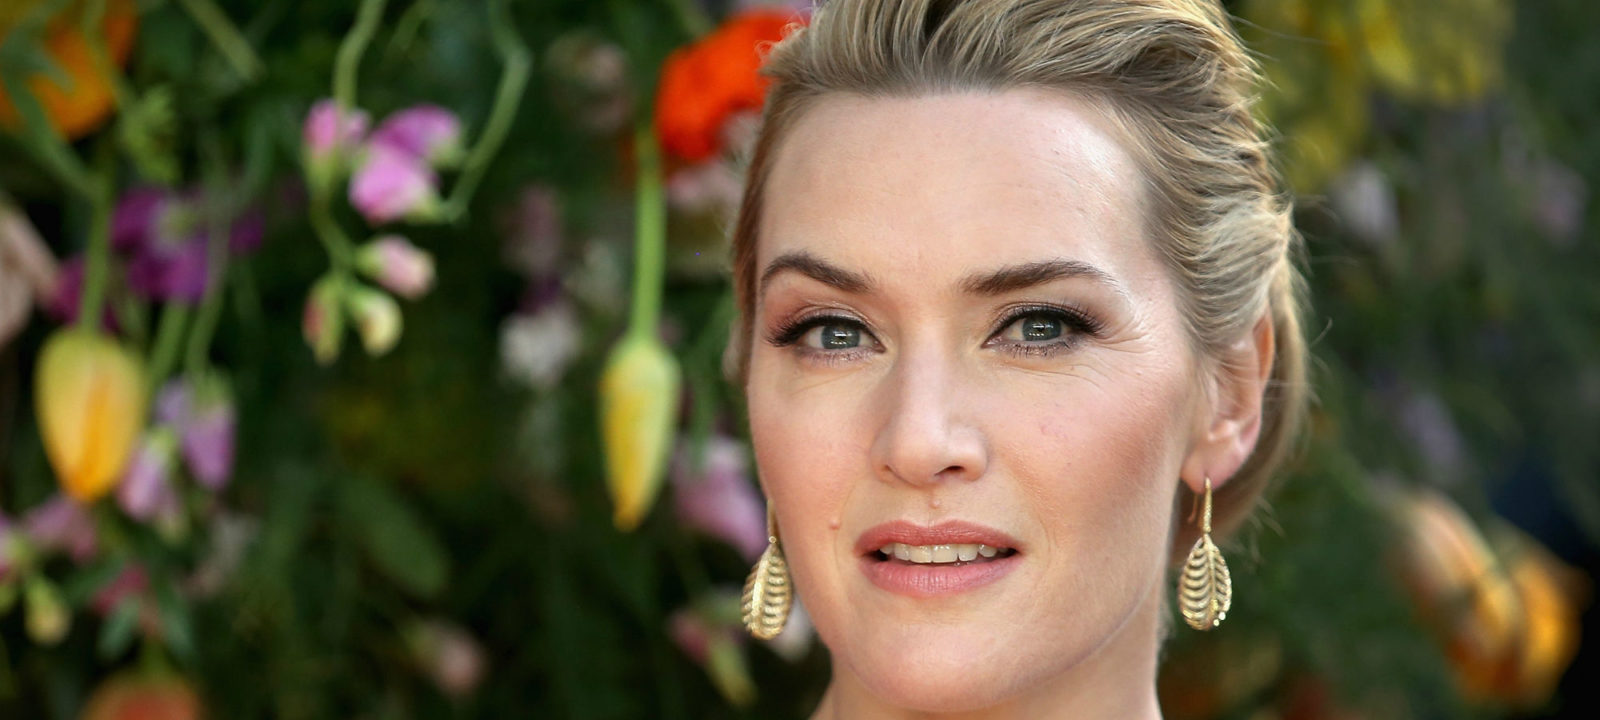 Kate Winslet Says She U2019s U2018Grappling With Regrets U2019 Over